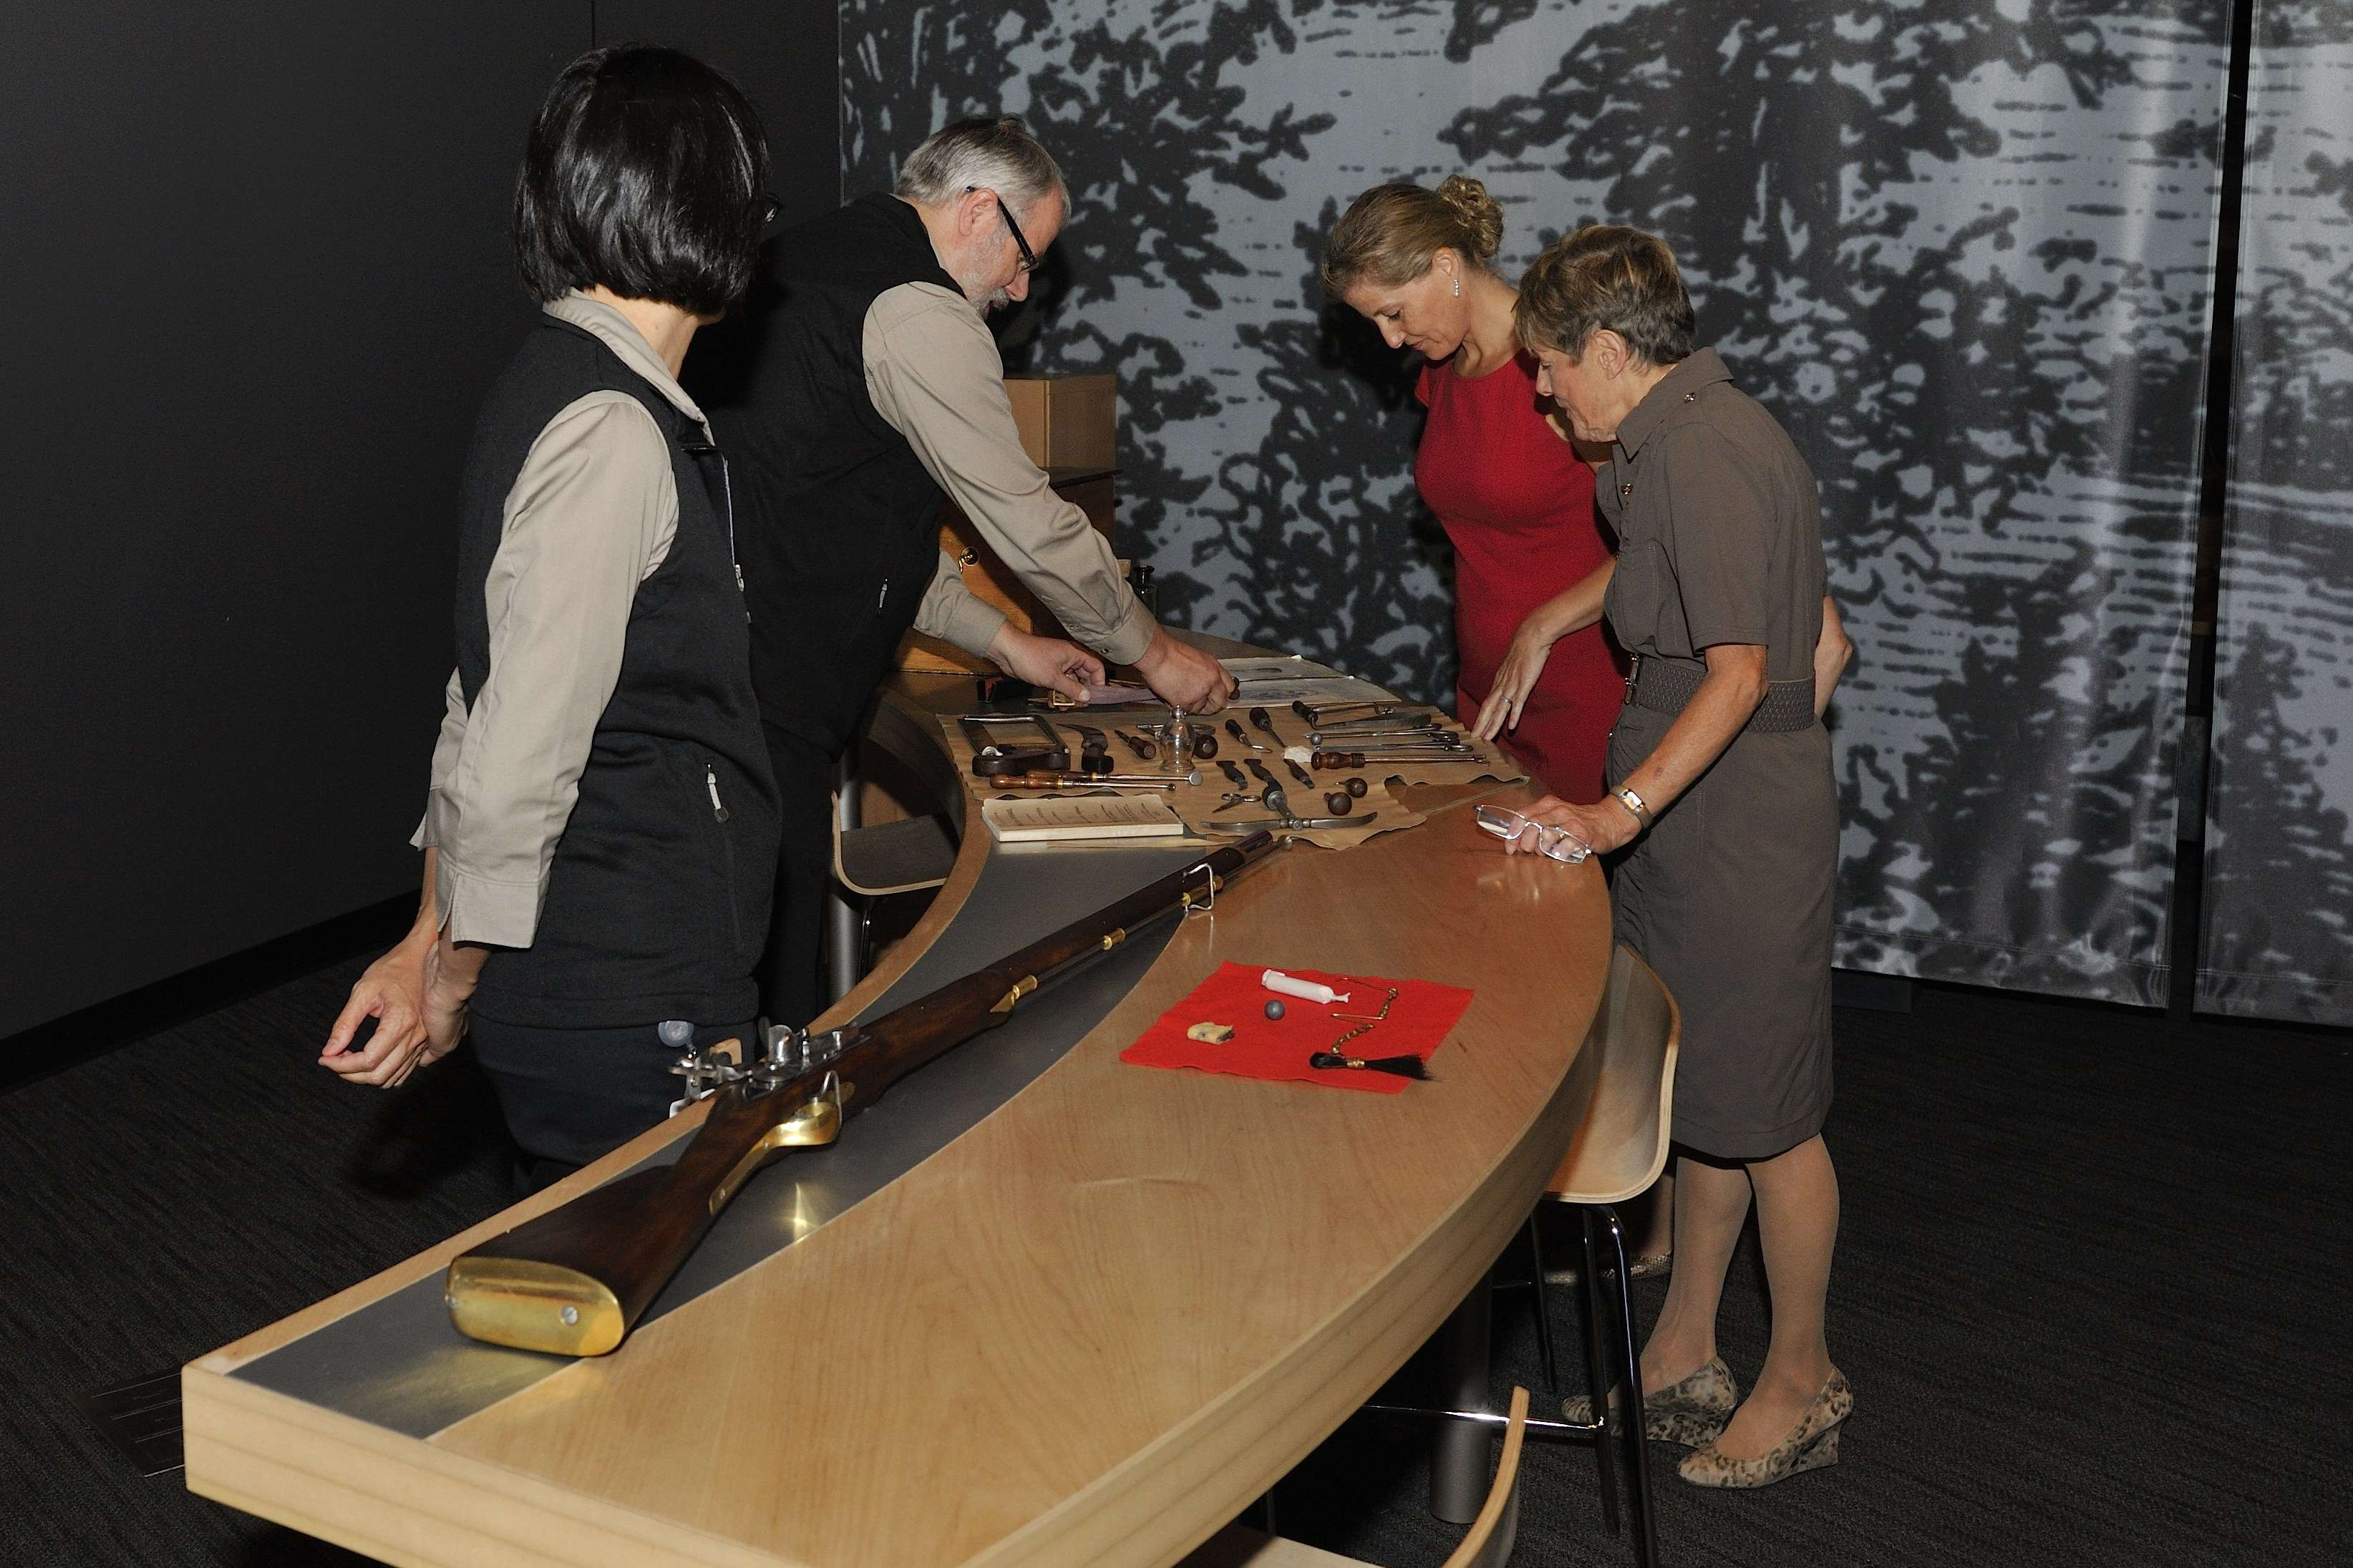 The exhibit features more than 160 artifacts, including iconic pieces from the Canadian War Museum's own world-renowned collections, and others from Library and Archives Canada, Parks Canada, the McCord Museum, the Niagara Historical Society Museum, the Peterborough Museum and Archives, and the City of Toronto.